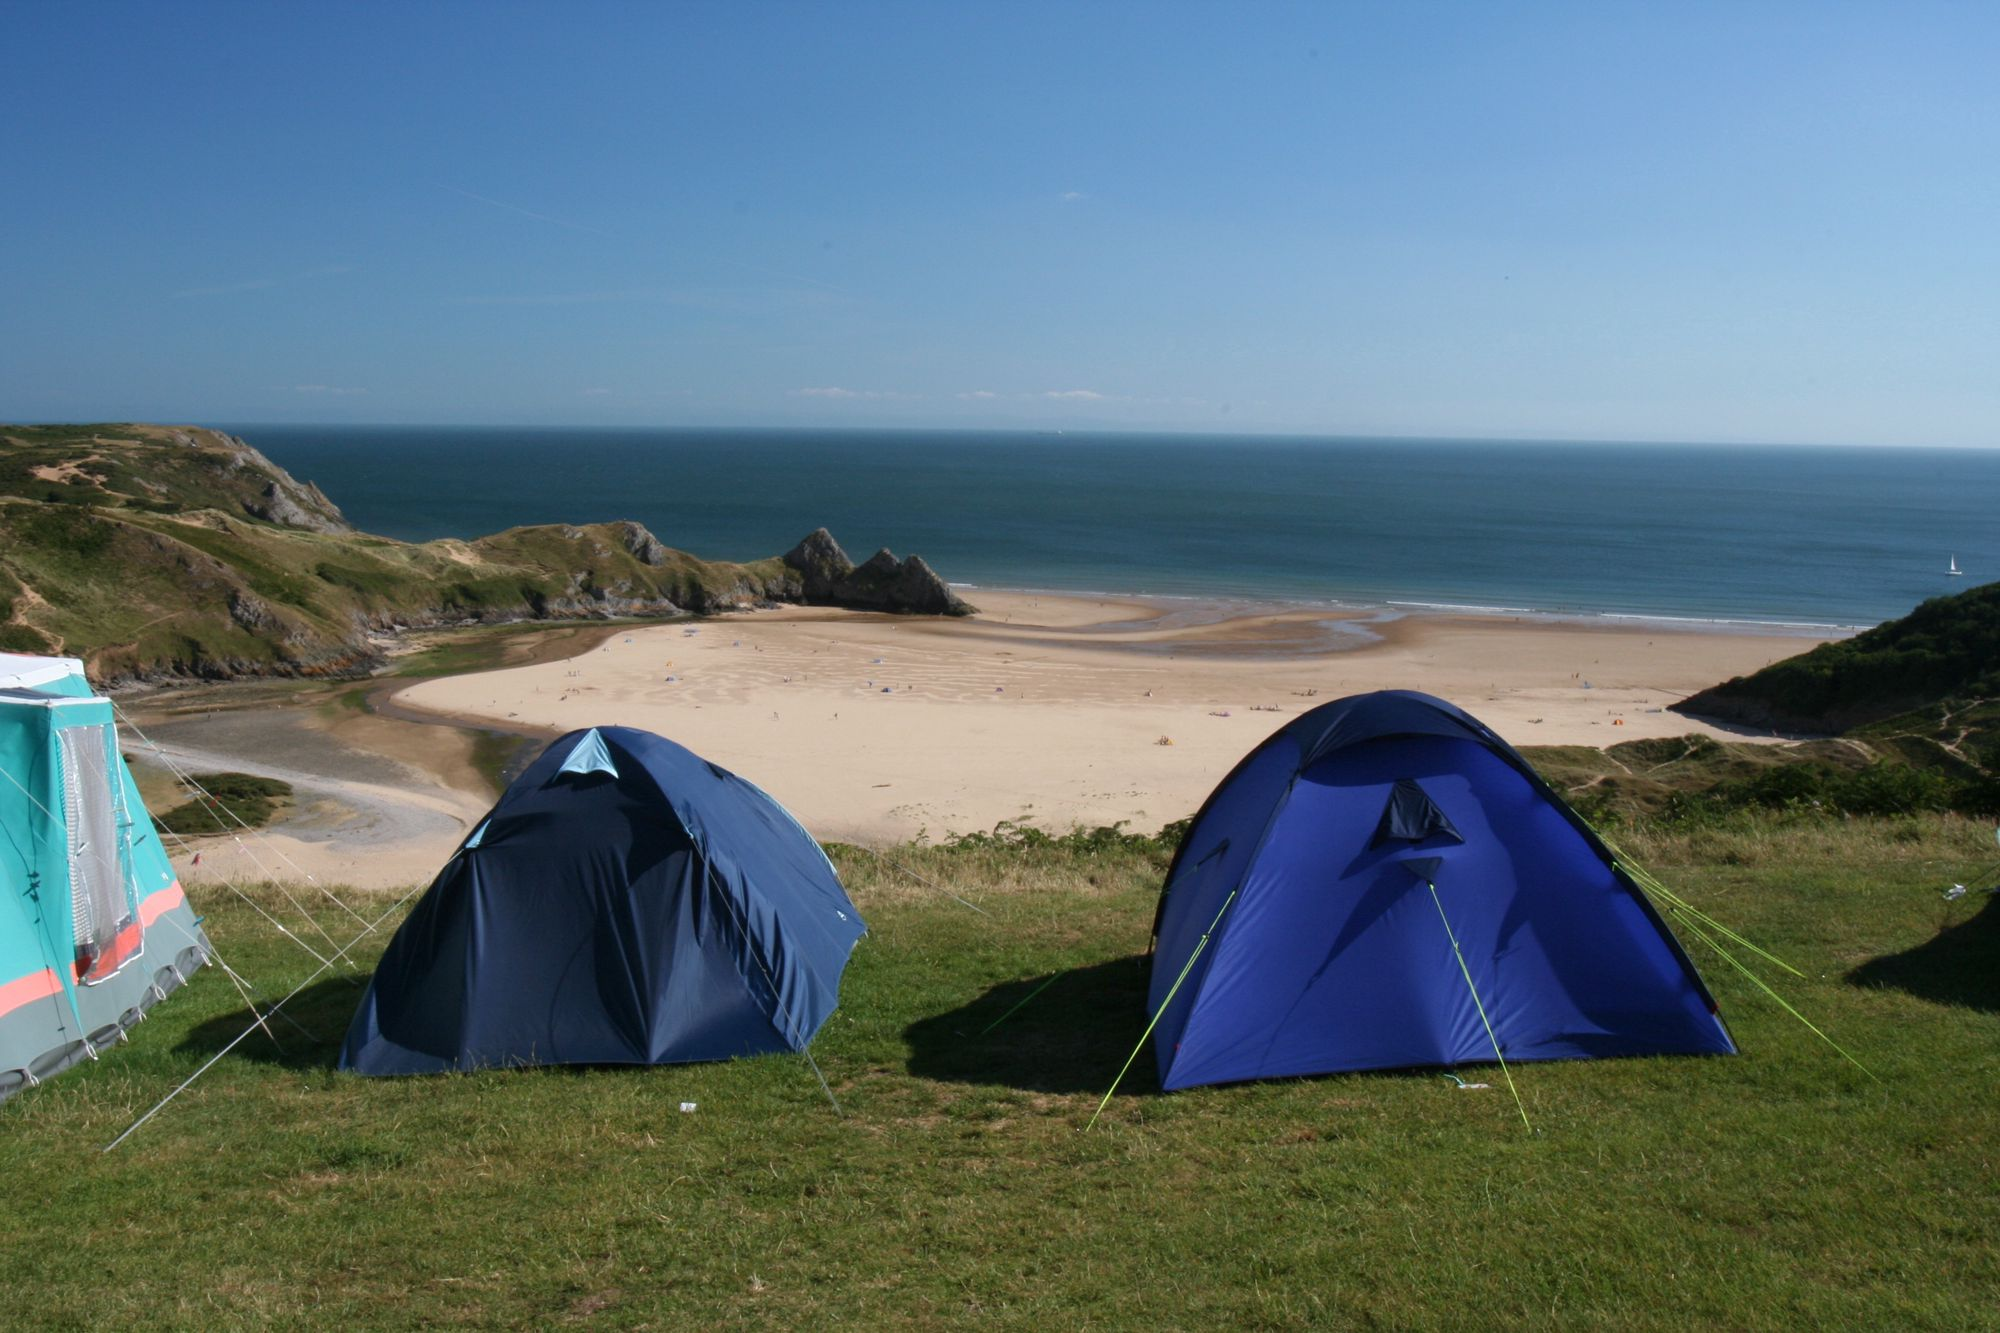 The Best Seaside Campsites in the UK – Camp by the Beach